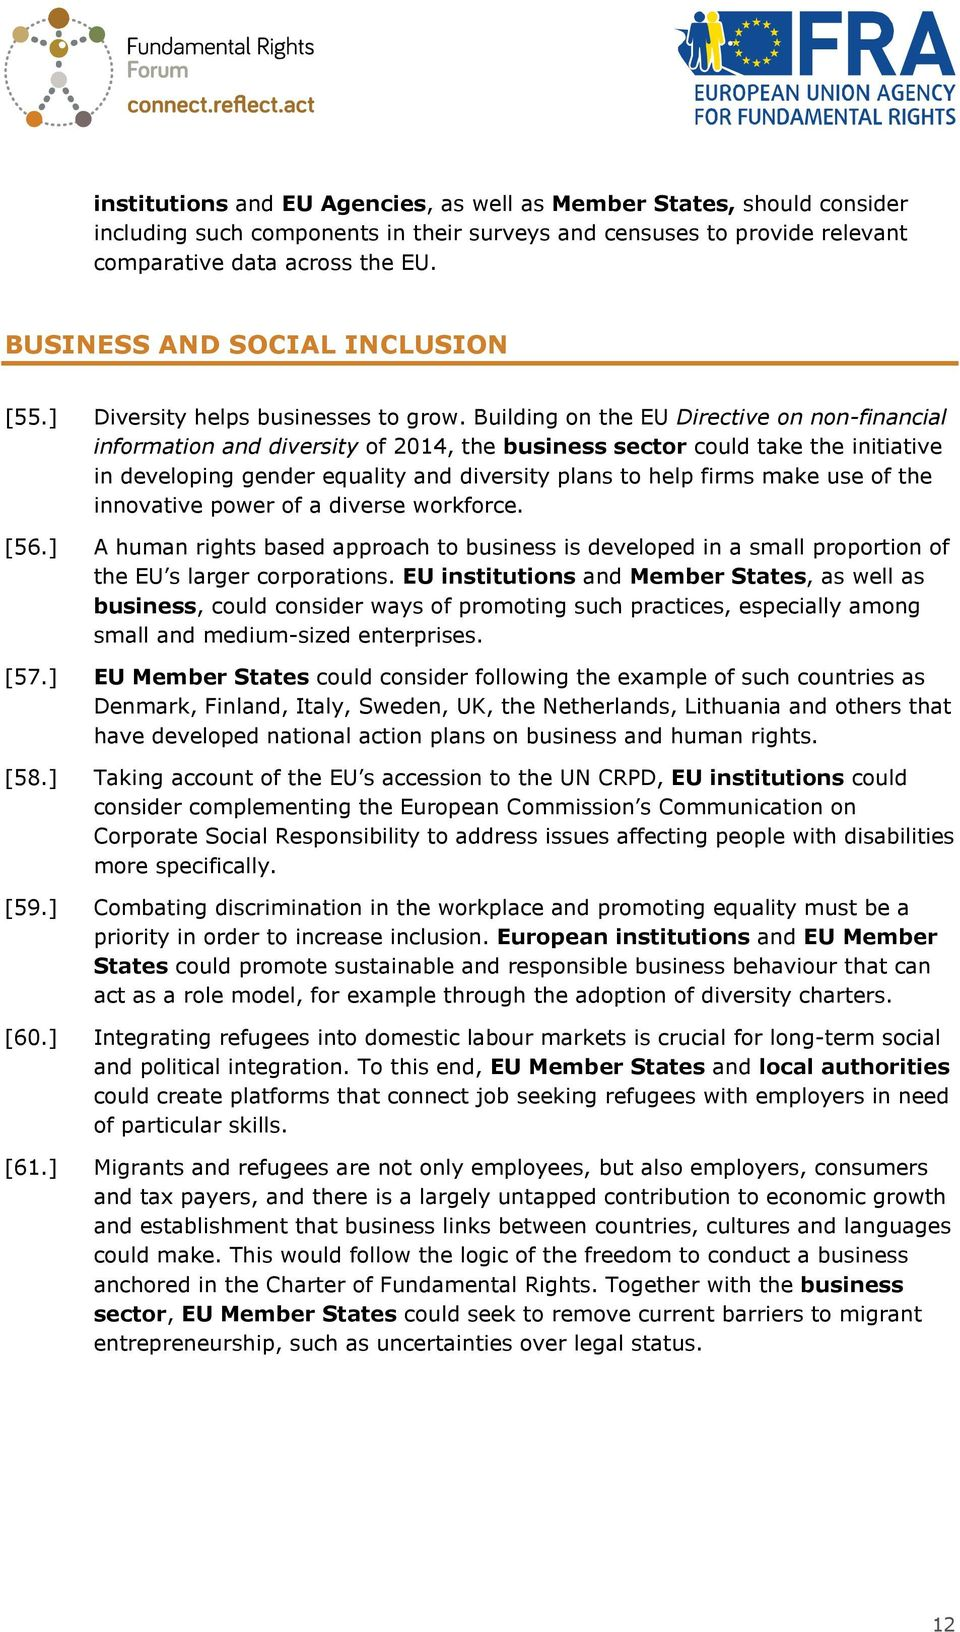 Building on the EU Directive on non-financial information and diversity of 2014, the business sector could take the initiative in developing gender equality and diversity plans to help firms make use